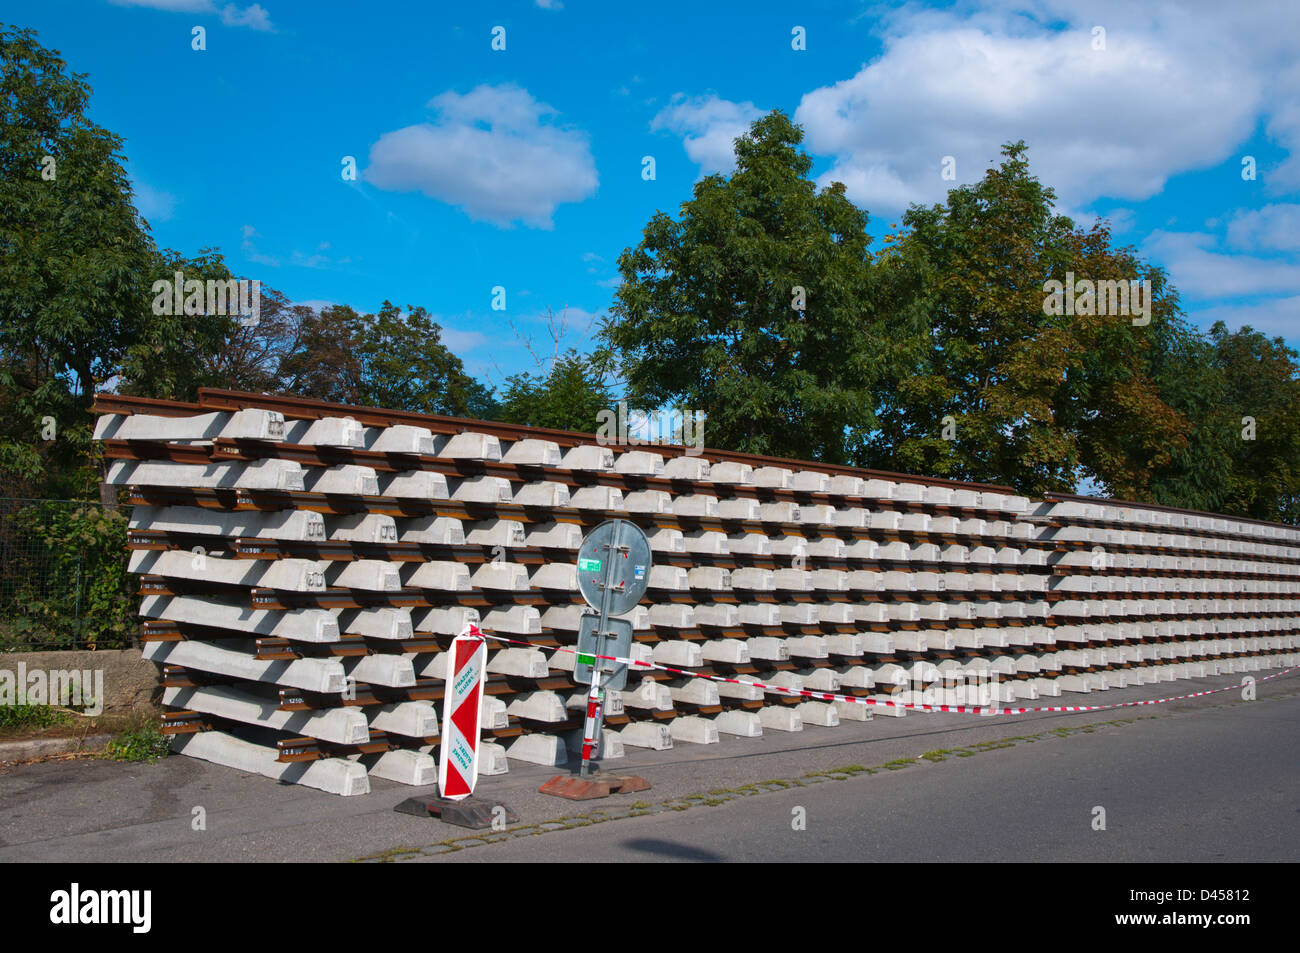 Tram tracks stacked up for replacing old ones Zizkov district Prague Czech Republic Europe - Stock Image